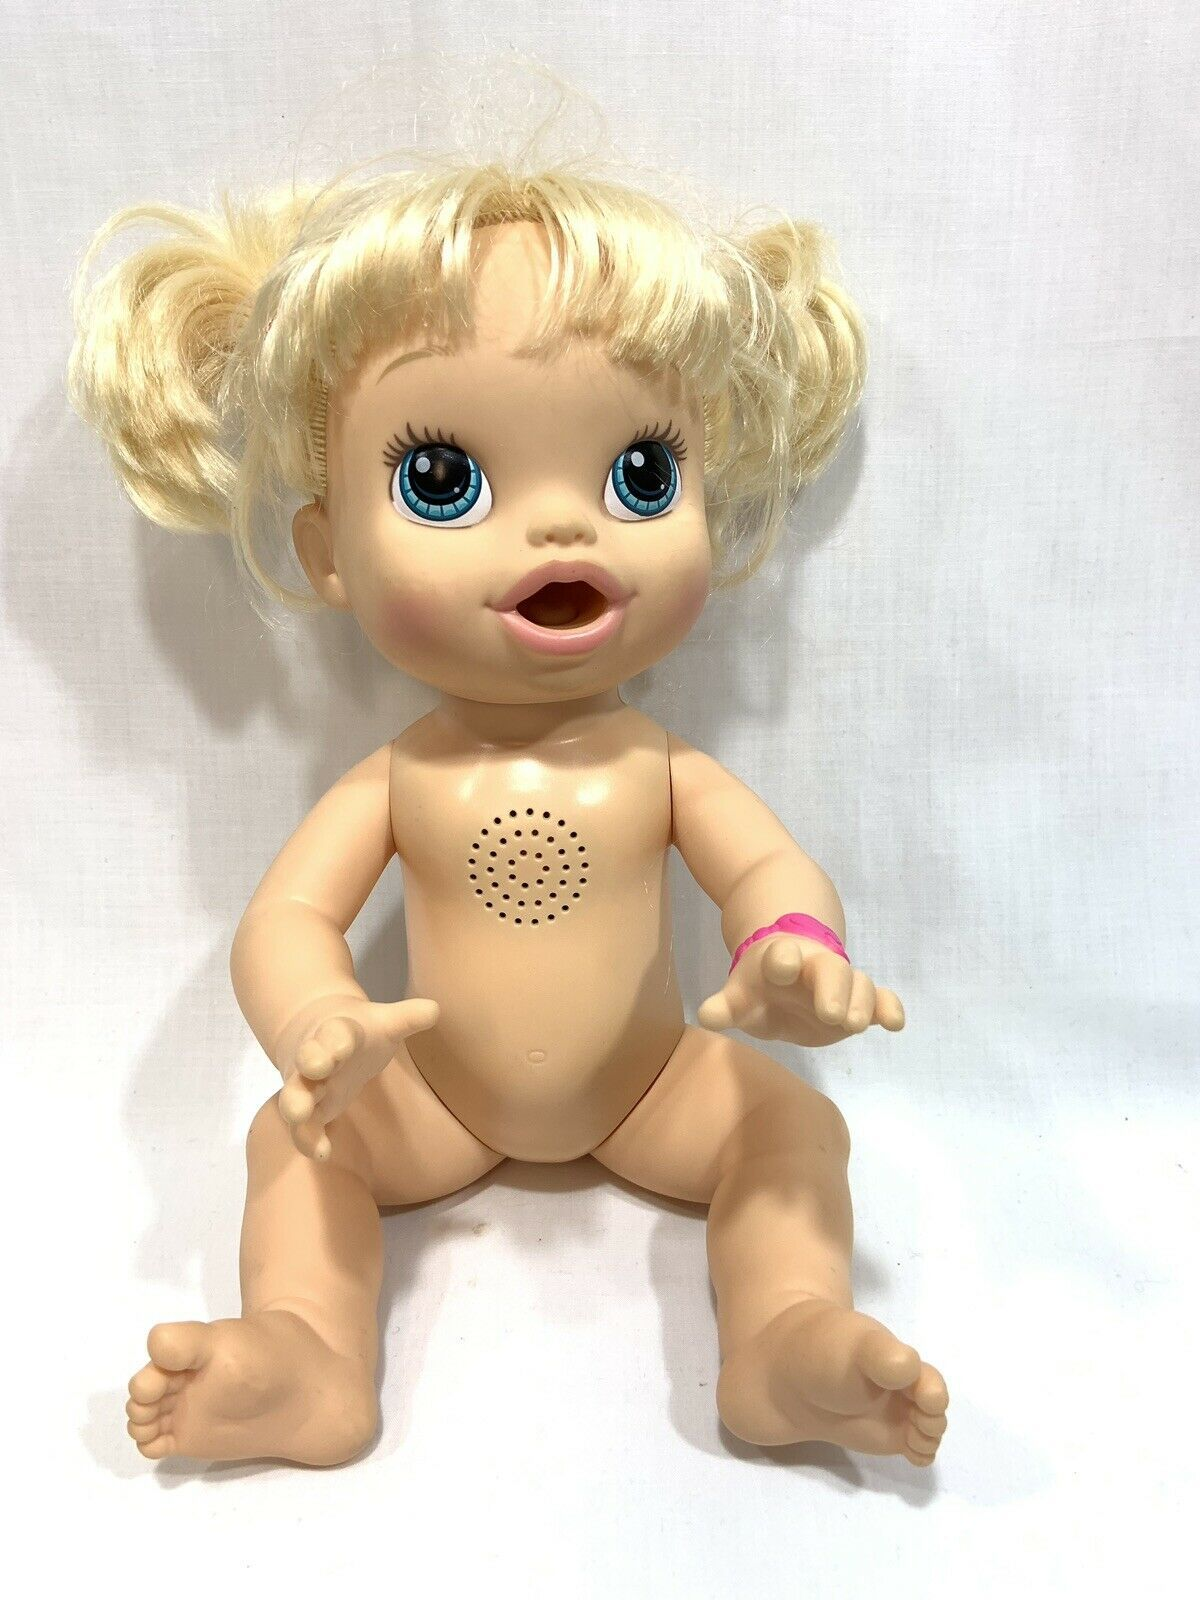 Baby Alive Hasbro 2013 Blonde Doll Interactive Talking Bilingual English Spanish image 8